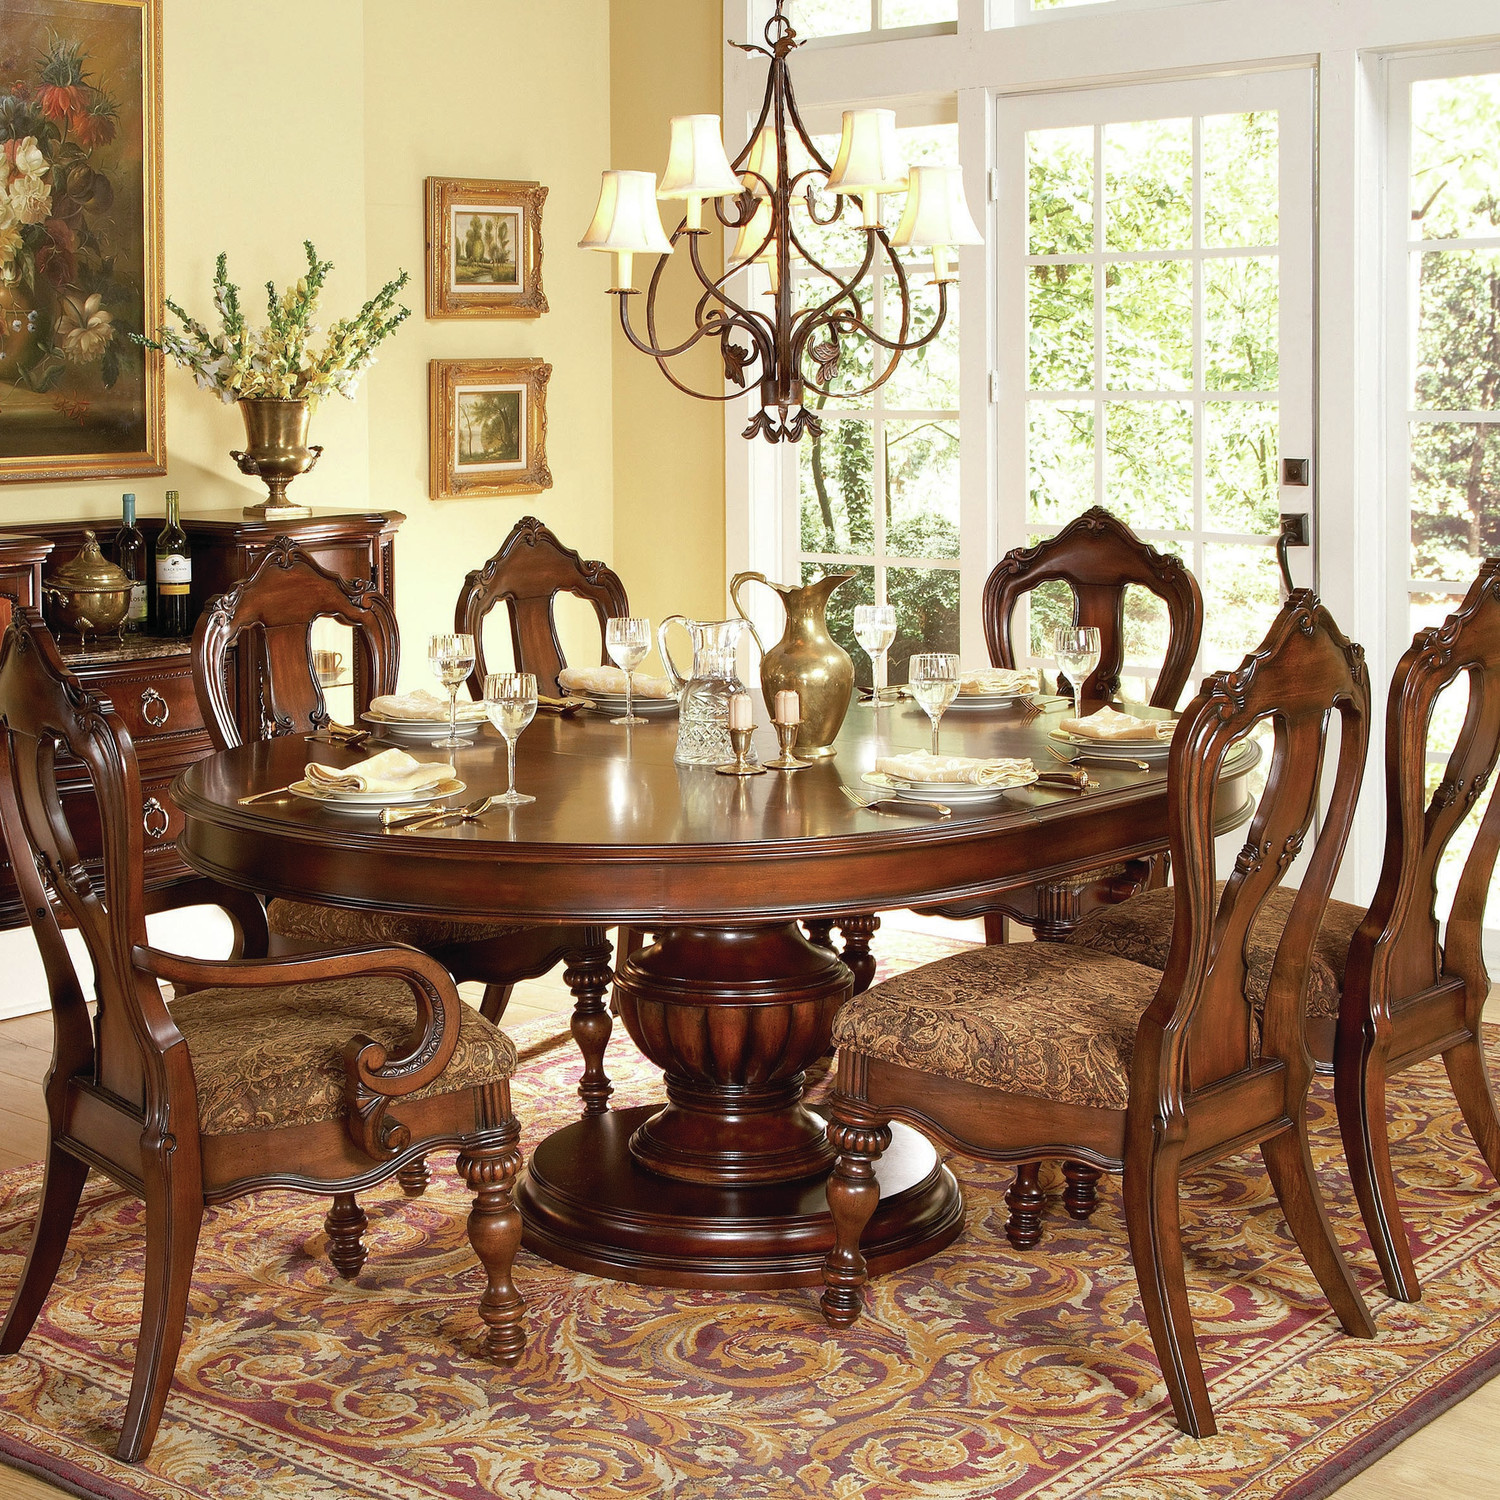 Getting a round dining room table for 6 by your own for Round table dining room ideas